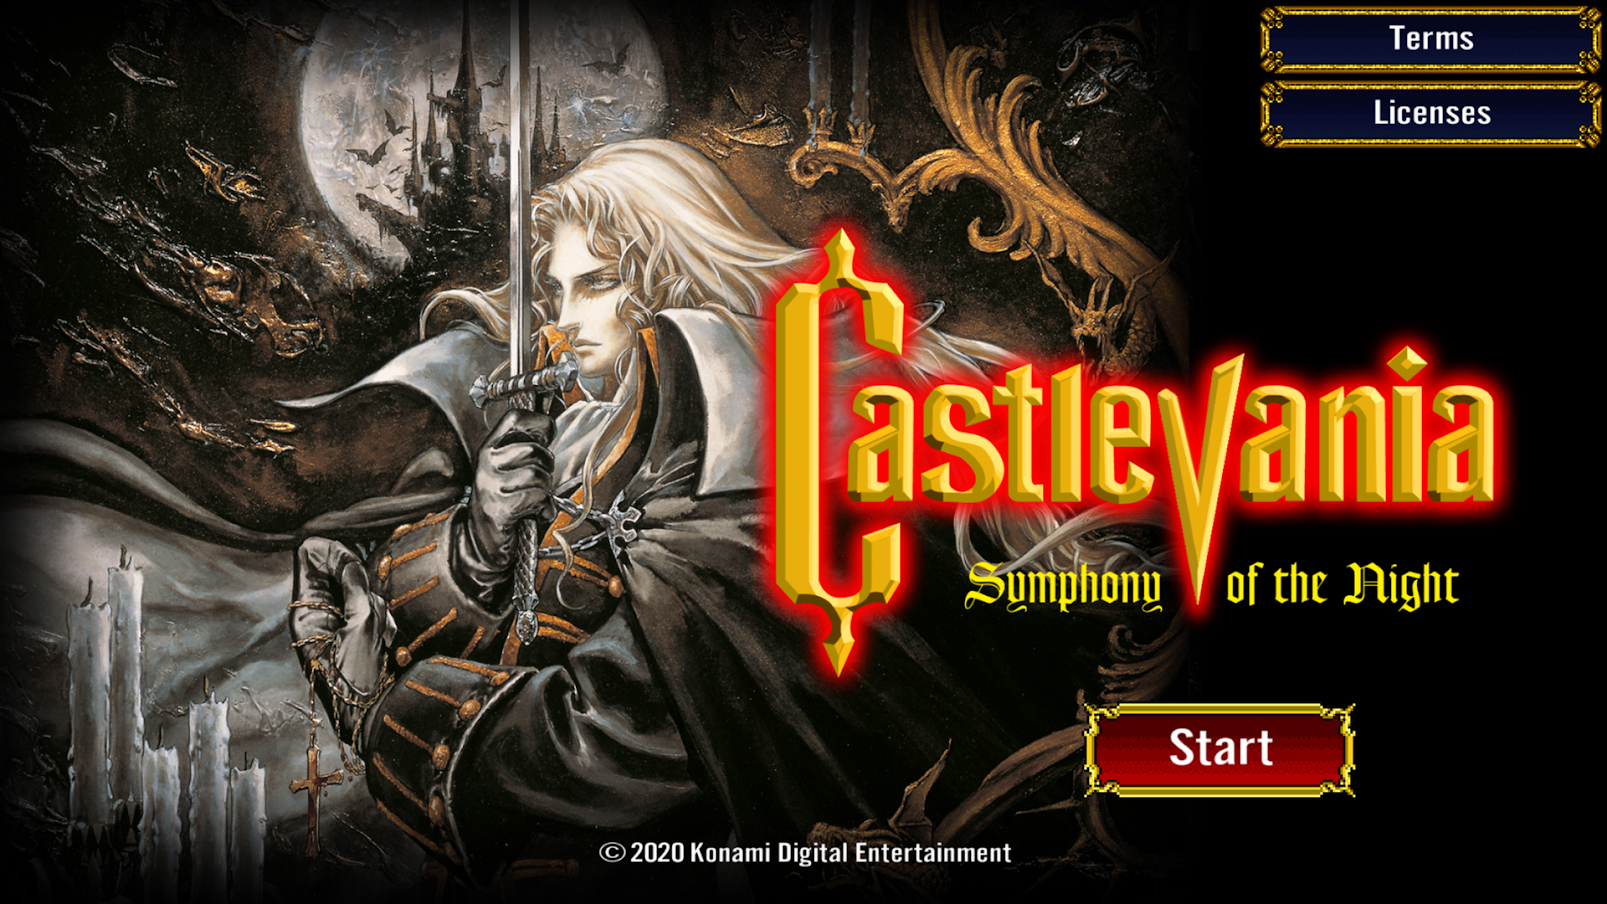 Symphony of the Night is one of the best Metroidvania games ever made, now available on Android